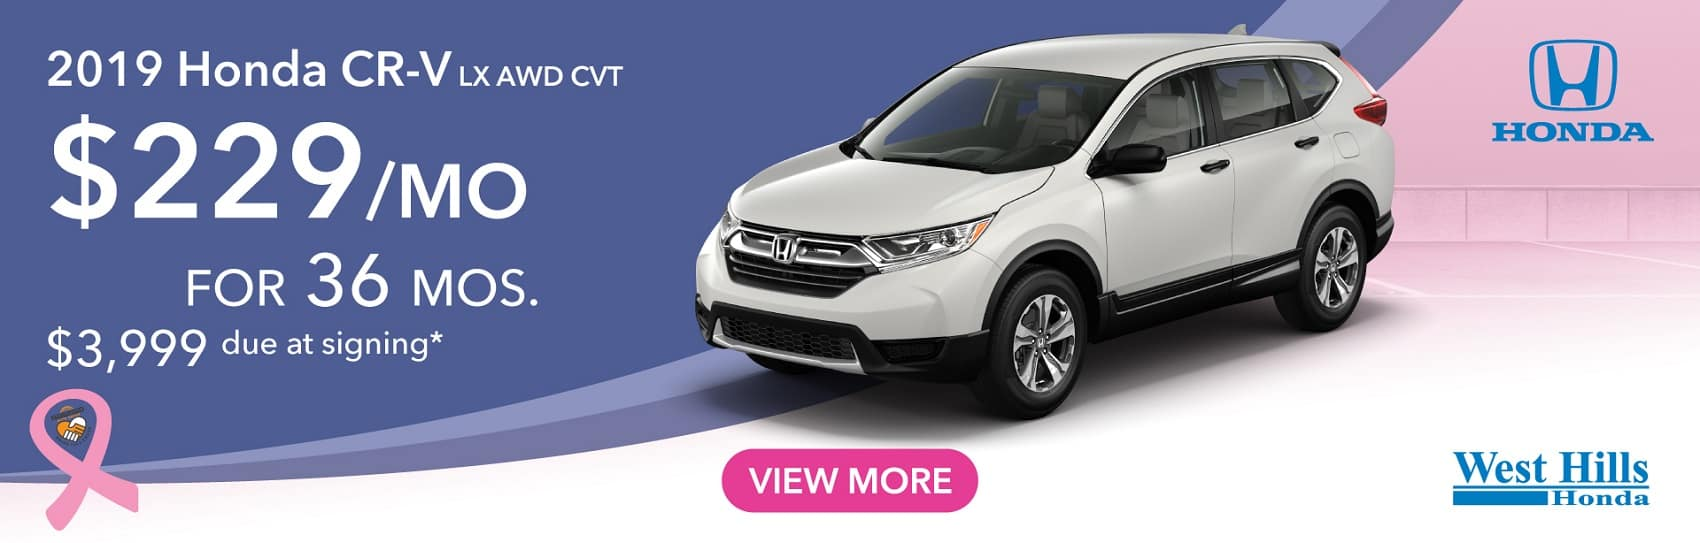 2019 Honda CR-V LX AWD CVT $229/mo. for 36 mos. $3,999 due at signing*    *Valid on 2019 Honda CR-V LX AWD CVT. $229 per mo. for 36 months. Lease with $3,999 due at signing; includes a $595 acquisition fee. Valid on VIN: 5J6RW6H37KL004775, 5J6RW6H30KL004679, 5J6RW6H36KL005268. MSRP $26,945. No Security deposit required. Subject to credit approval. 36 monthly payments required. Not all lessees will qualify for lowest payment through participating lender. Residency restrictions apply. Lessee responsible for maintenance, excessive wear/tear and mileage over 12,000 miles per year at $0.15/mile. Option to purchase at lease end. Excludes state and local taxes, tags, registration and title, insurance and dealer charges. A negotiable dealer documentary service fee of up to $150 may be added to the sale price or capitalized cost. Offer expires 10/31/2019.